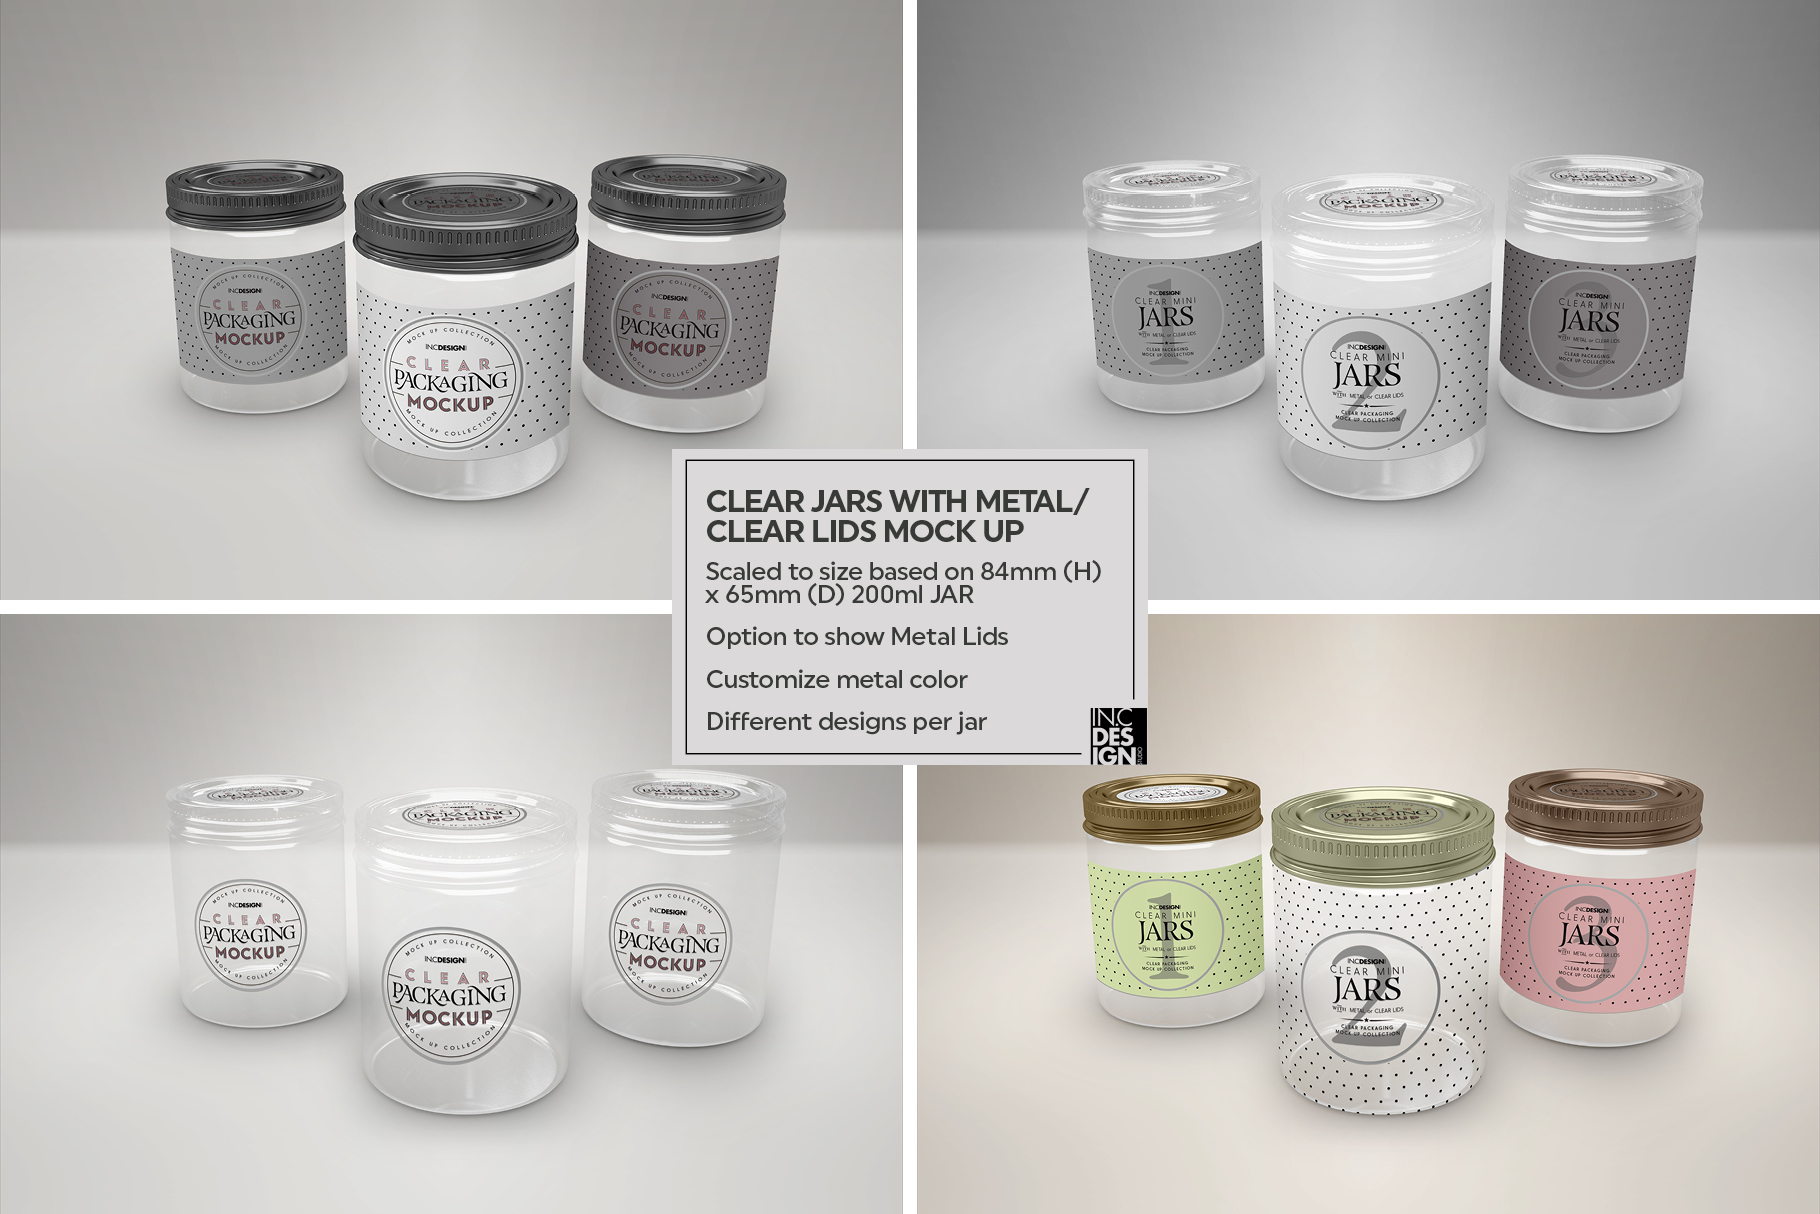 Clear Jars with Metal /Clear Lids Mockup example image 5